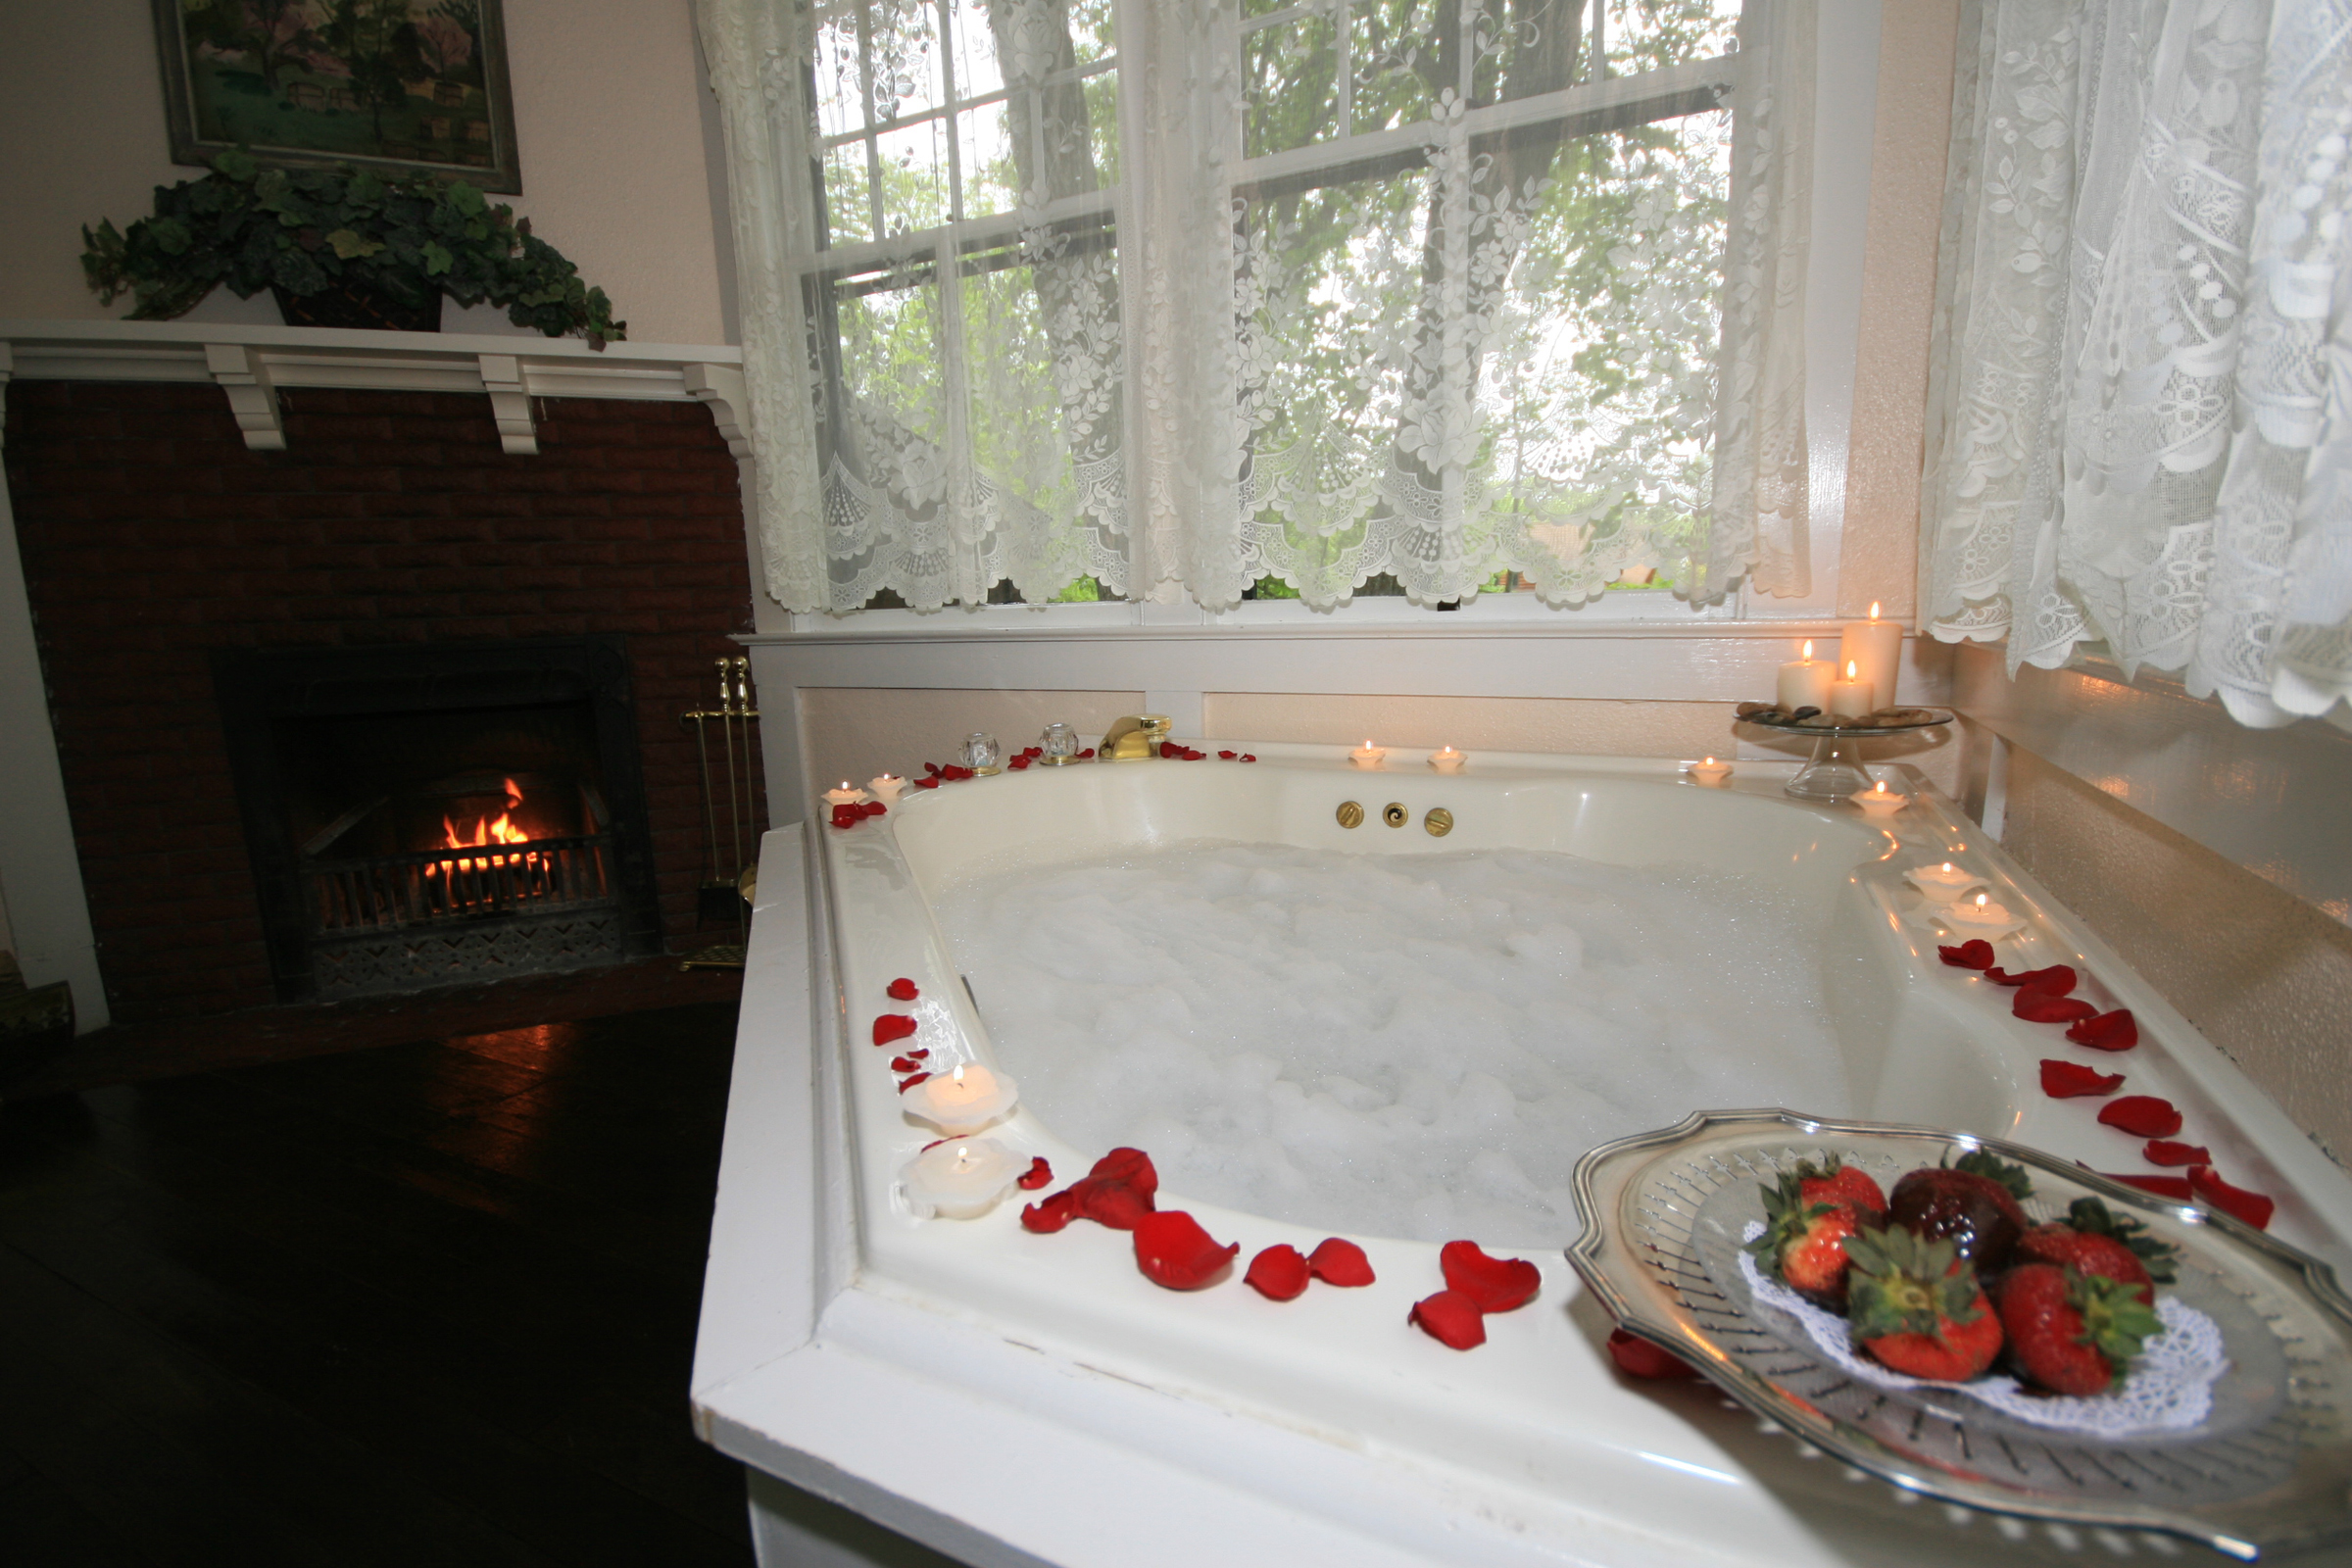 Enjoy a whirlpool tub and watch the flames dance in the fireplace.